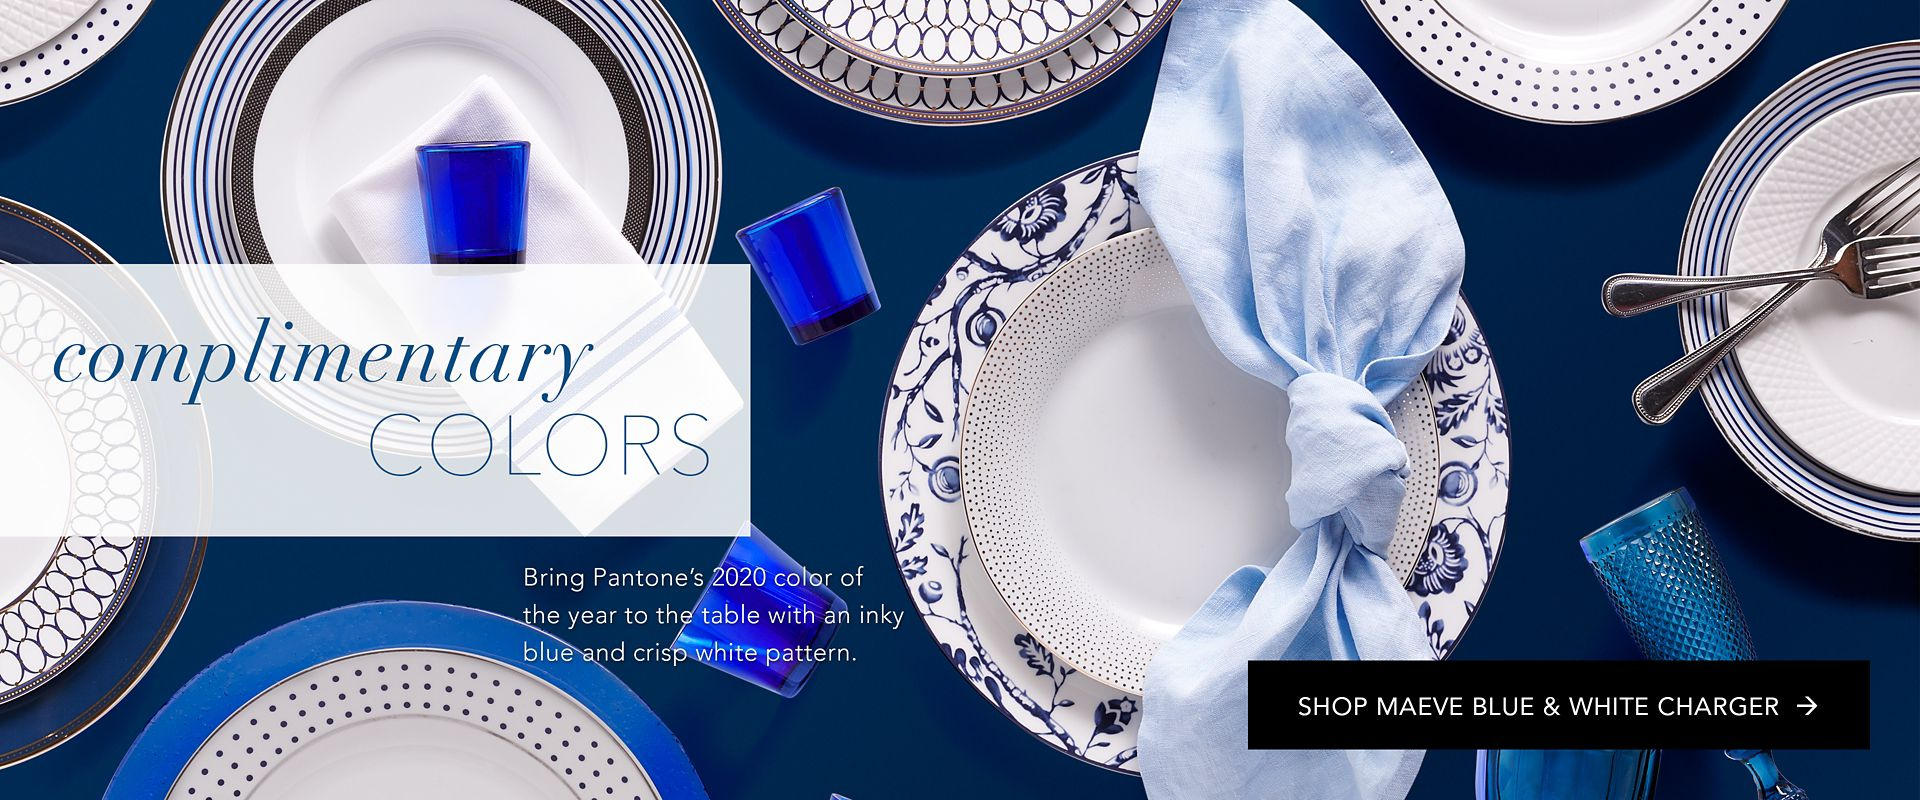 Shop Party Rental Ltd. Maeve Blue and White Charger